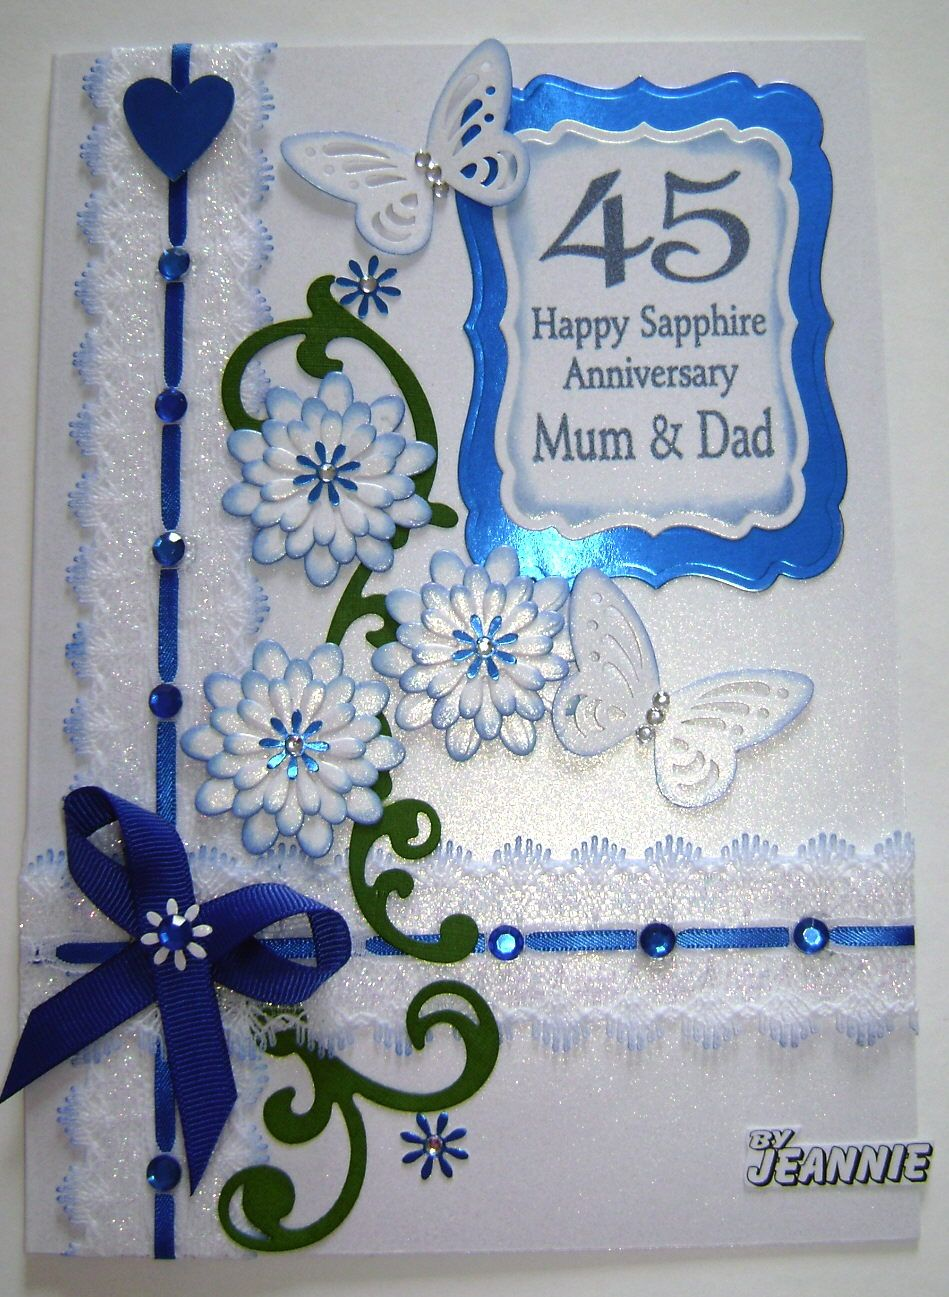 45th Wedding Anniversary Gift Ideas For Husband : anniversary anniversary cakes anniversary ideas wedding anniversary ...